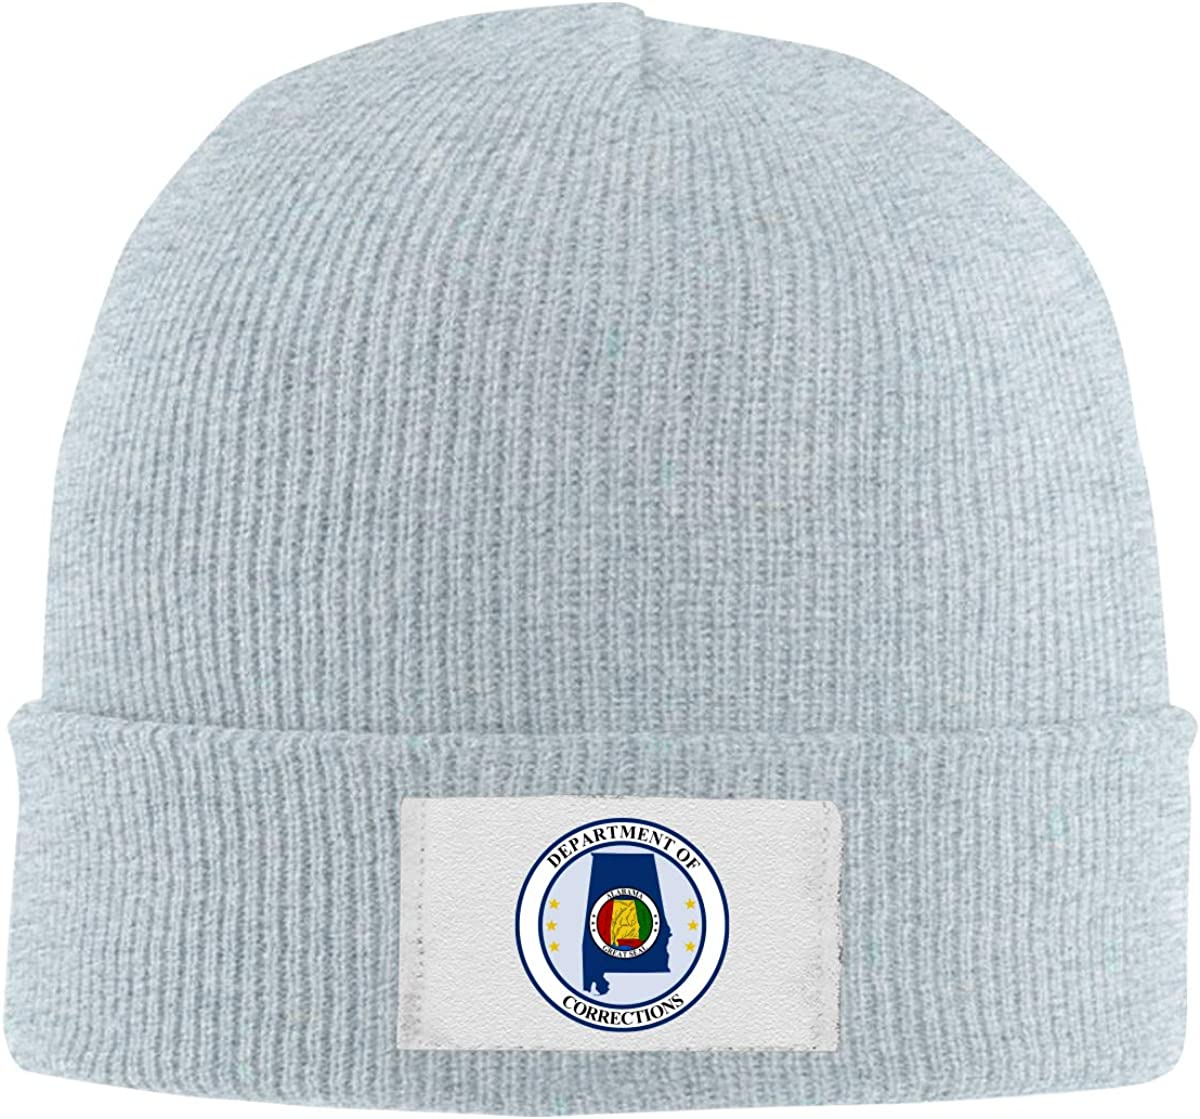 RZMdSG Seal of The Alabama Department of Corrections Unisex Winter Printed Warm Knitting Hats Skull Cap